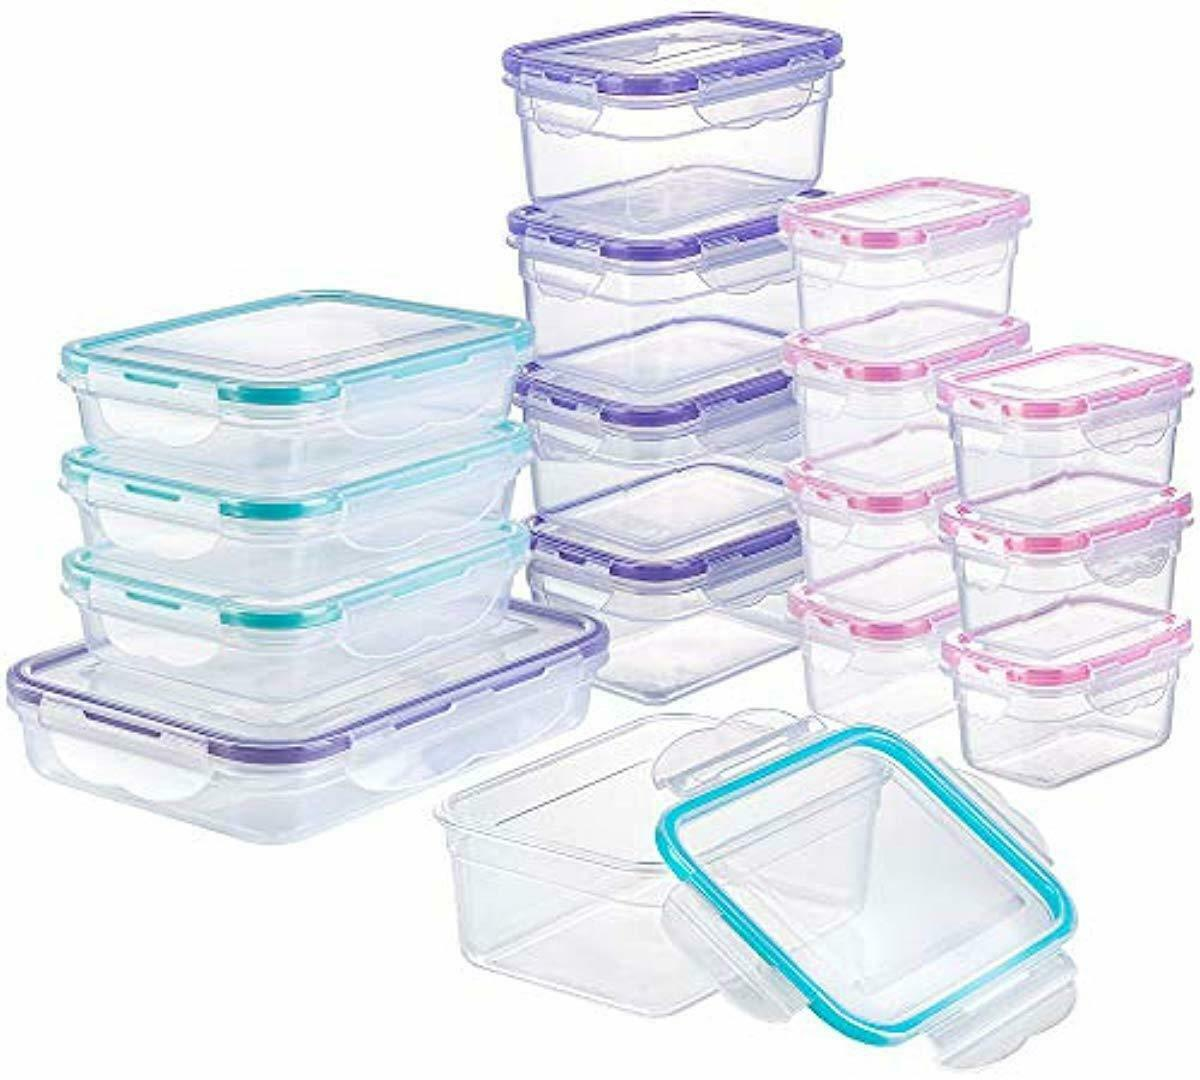 Plastic Meal Containers With Lid 16 Pack Airtight Storage Sn